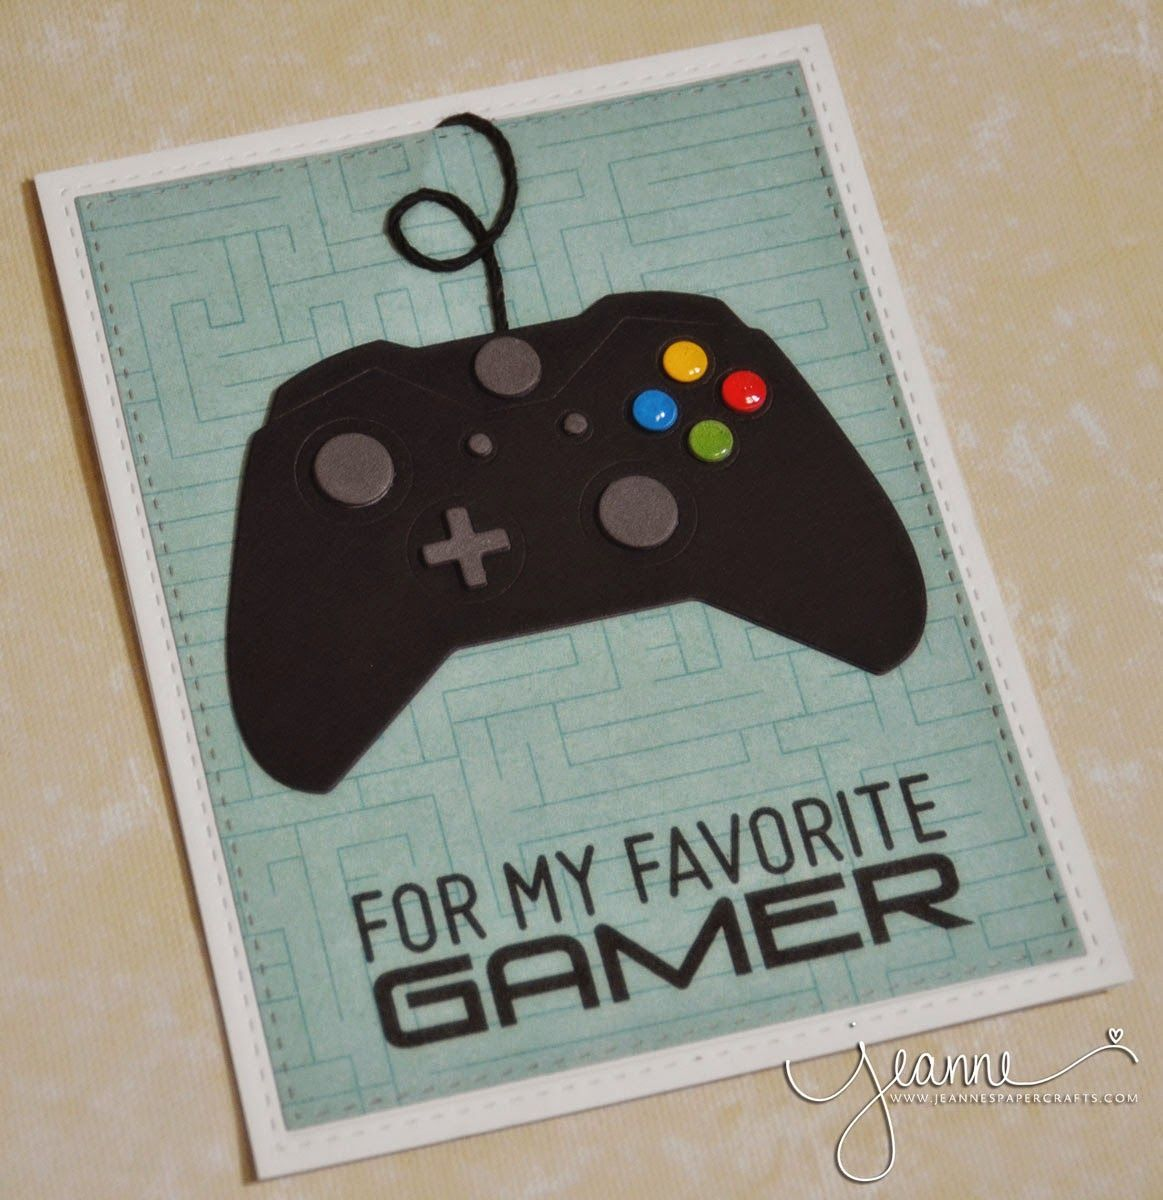 jeanne's paper crafts for my favorite gamer  cool